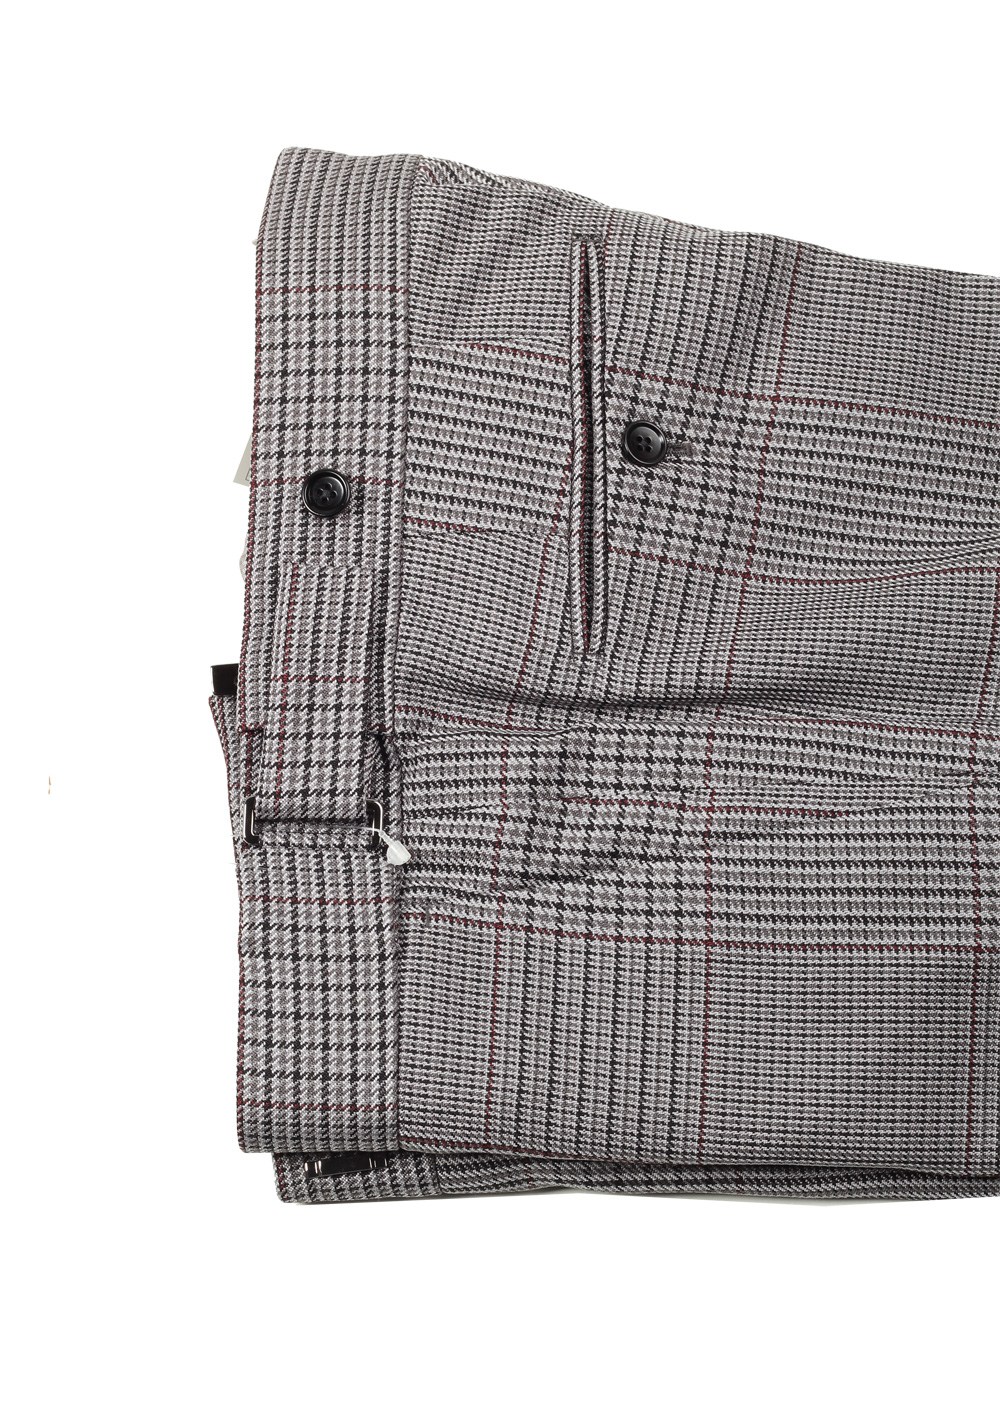 TOM FORD Atticus Gray Checked Suit Size 46 / 36R U.S. In Silk | Costume Limité